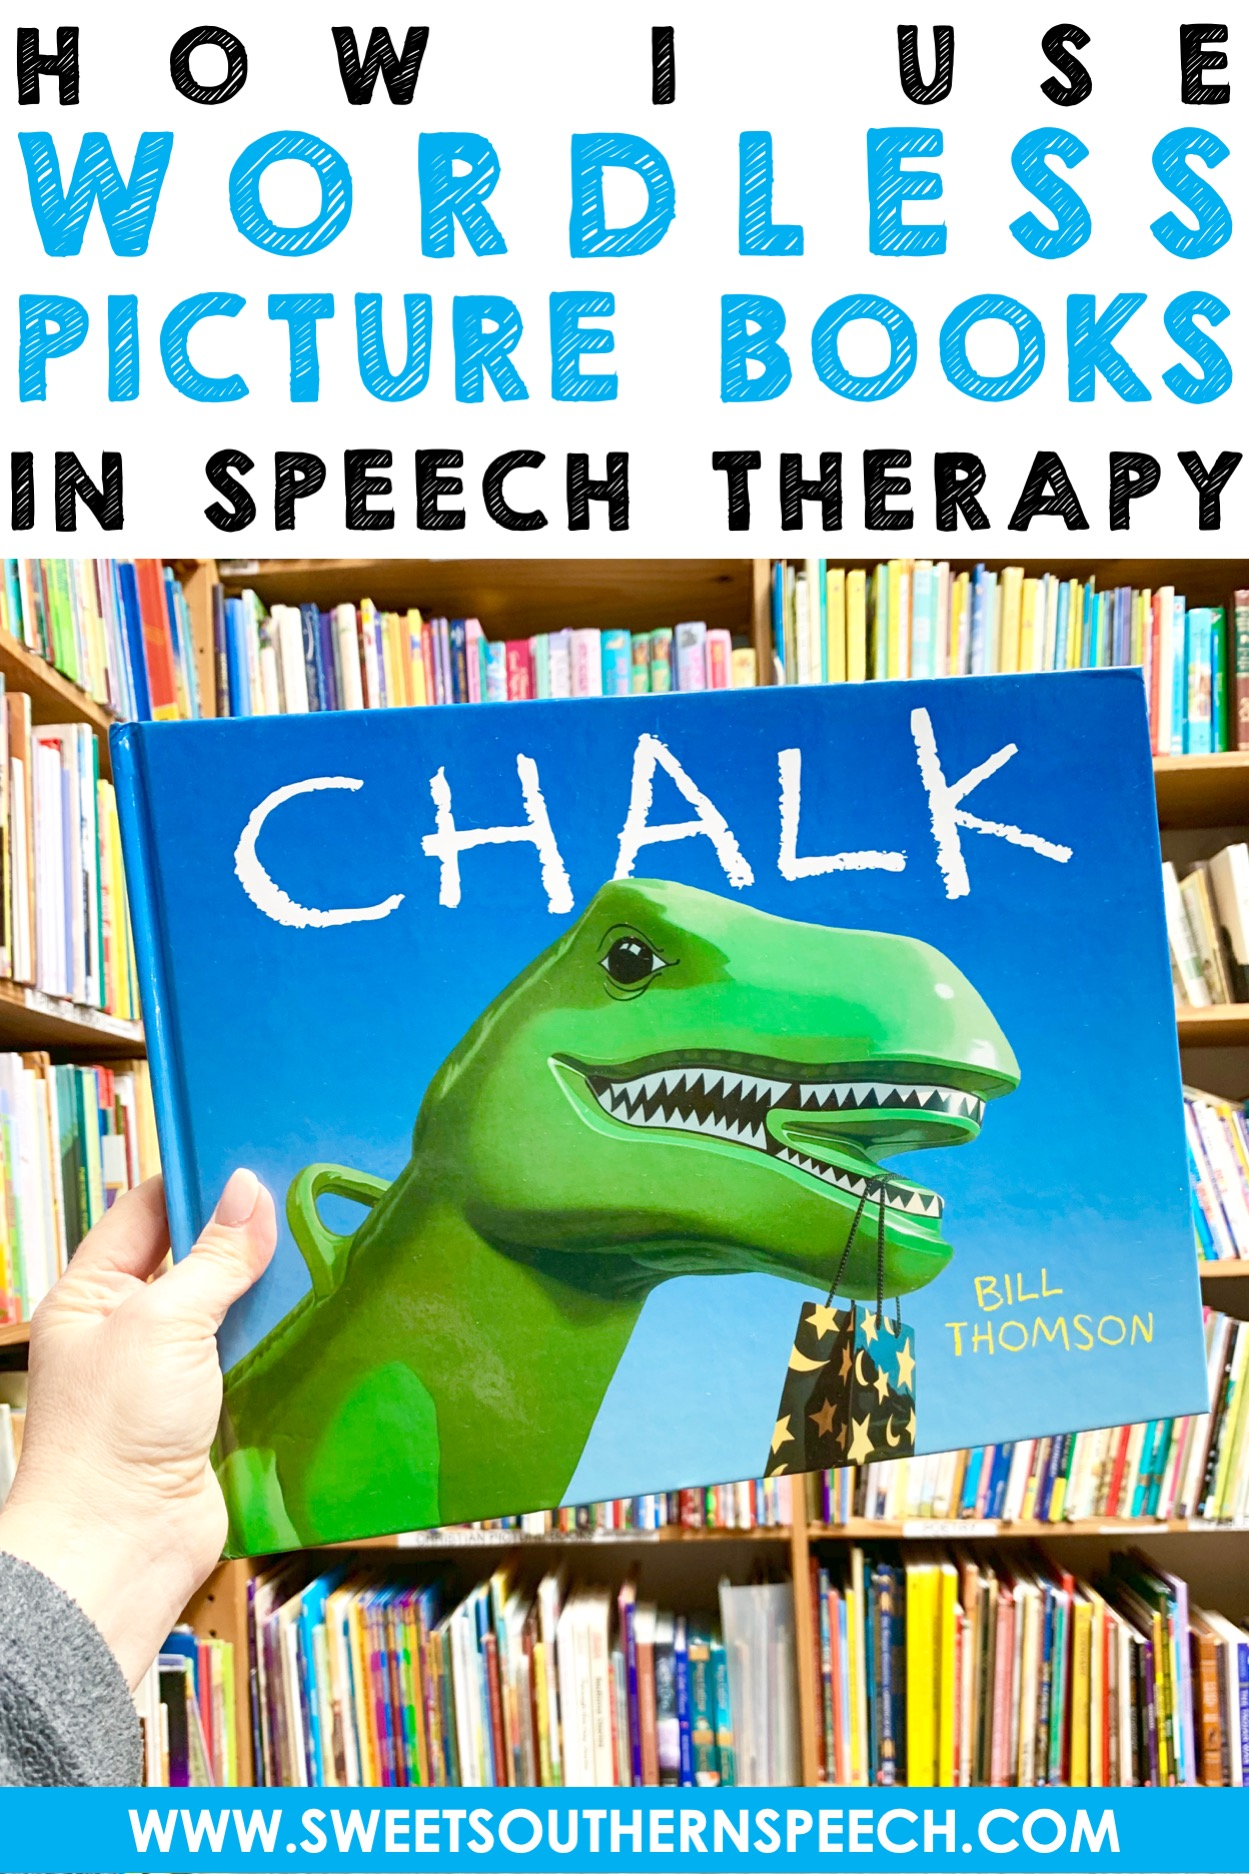 10 wordless picture books to use in speech therapy